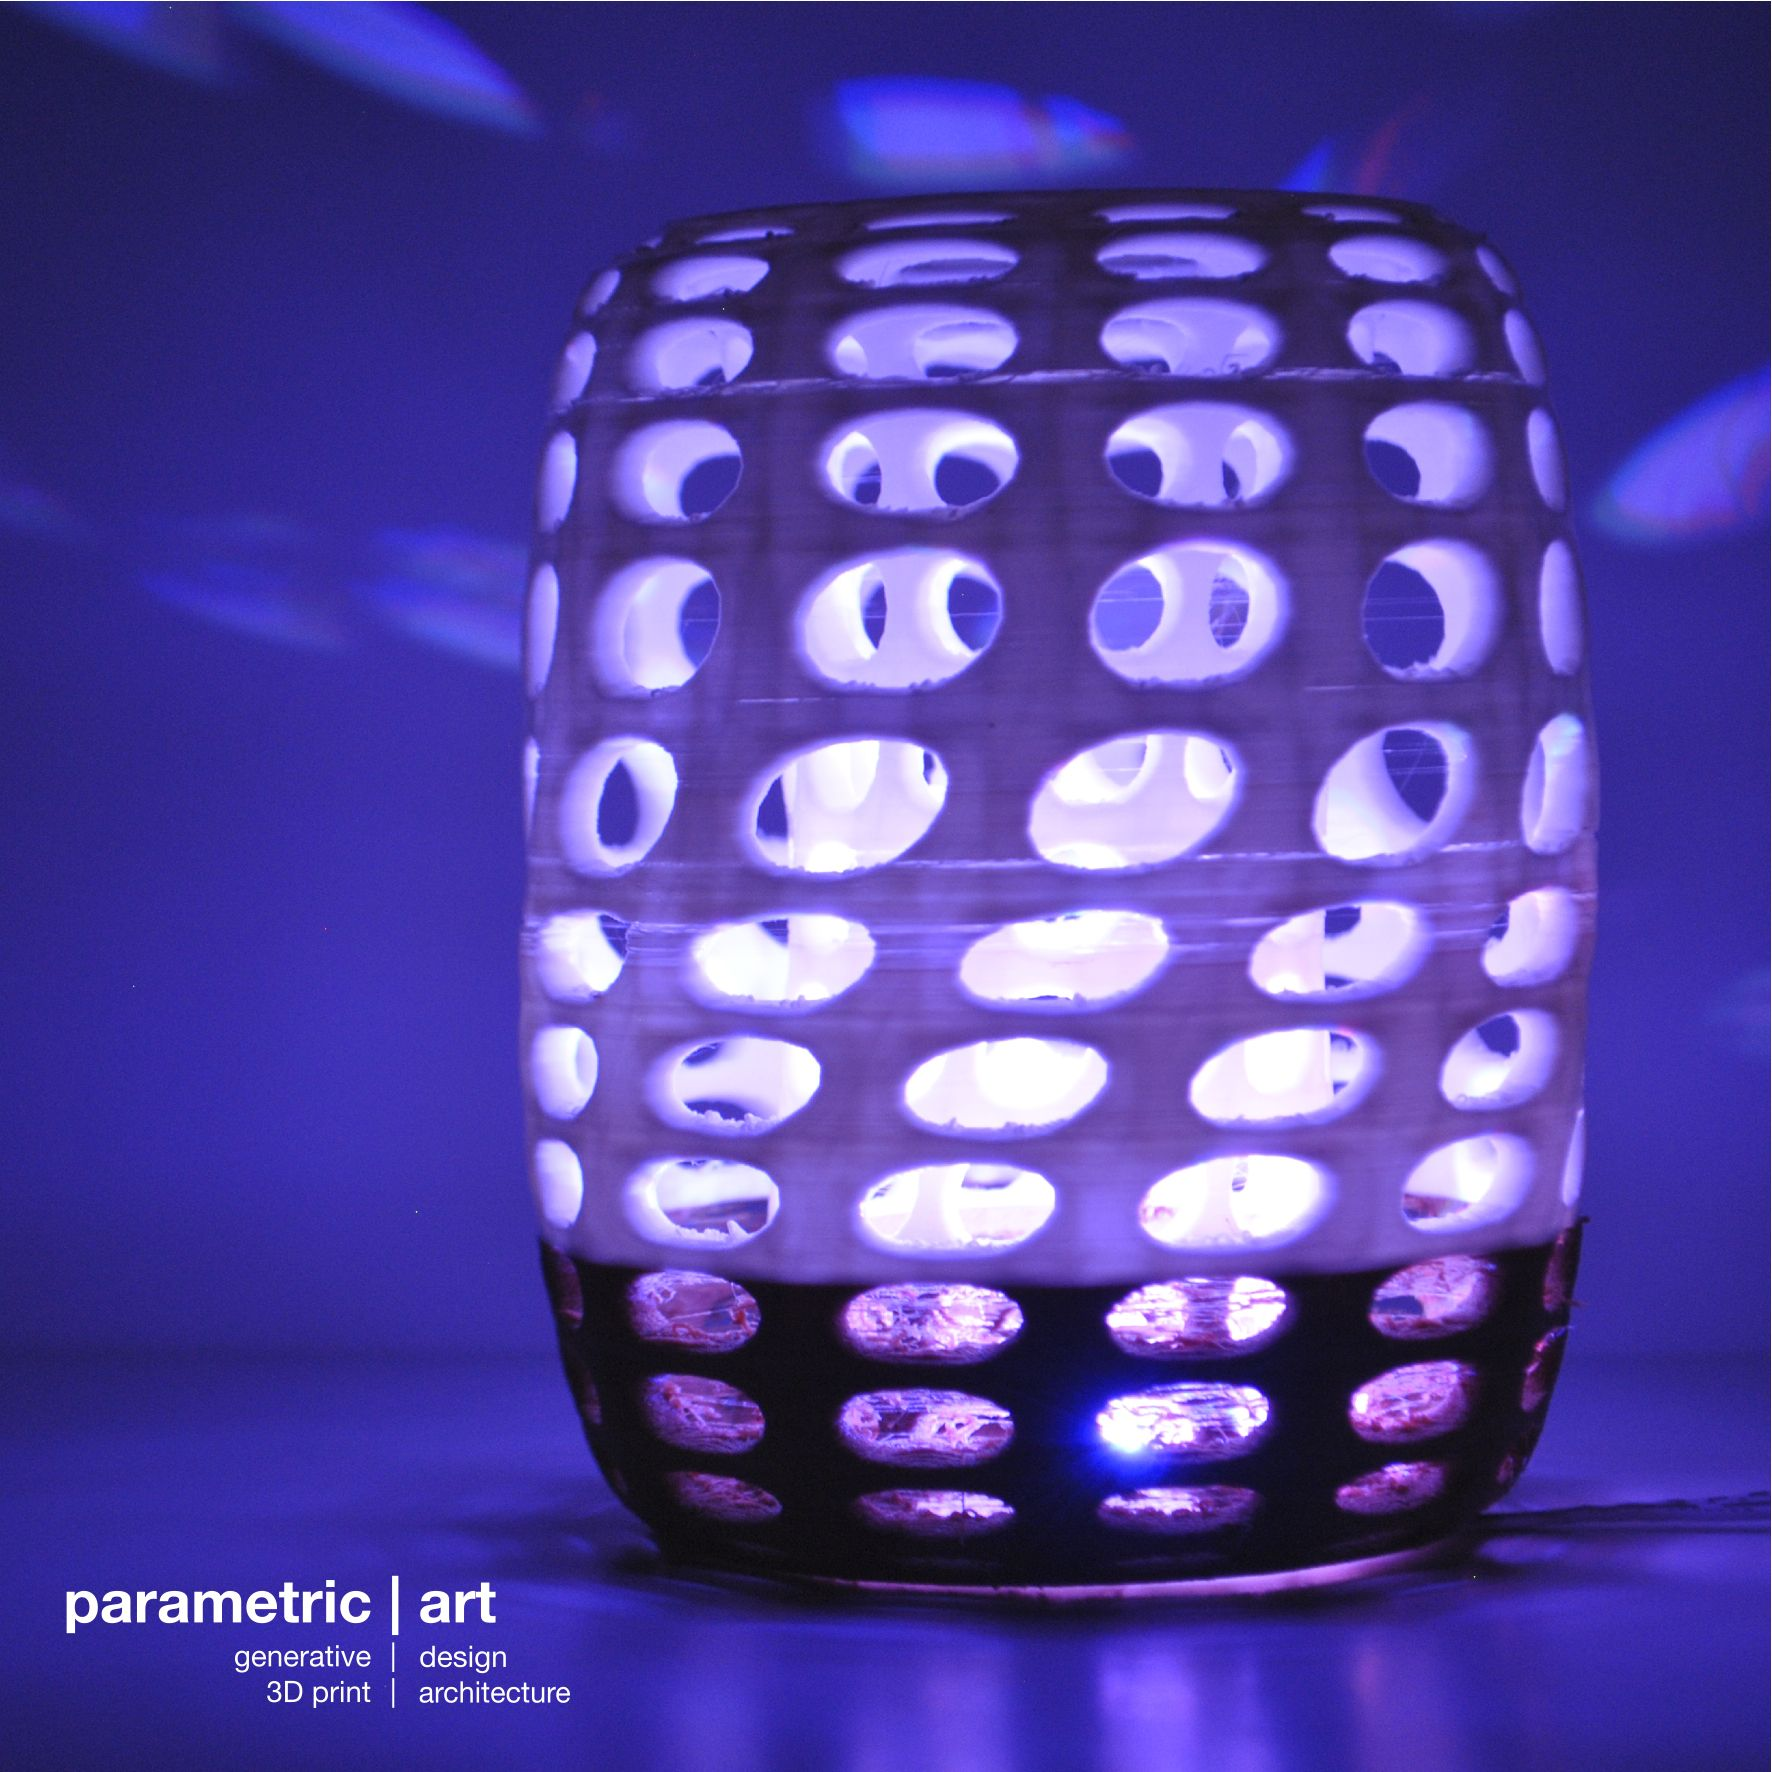 amazing lampshade 3d printed with wood and PLA - designed by parametric | art http://parametric-art.com/3d-nyomtatas/